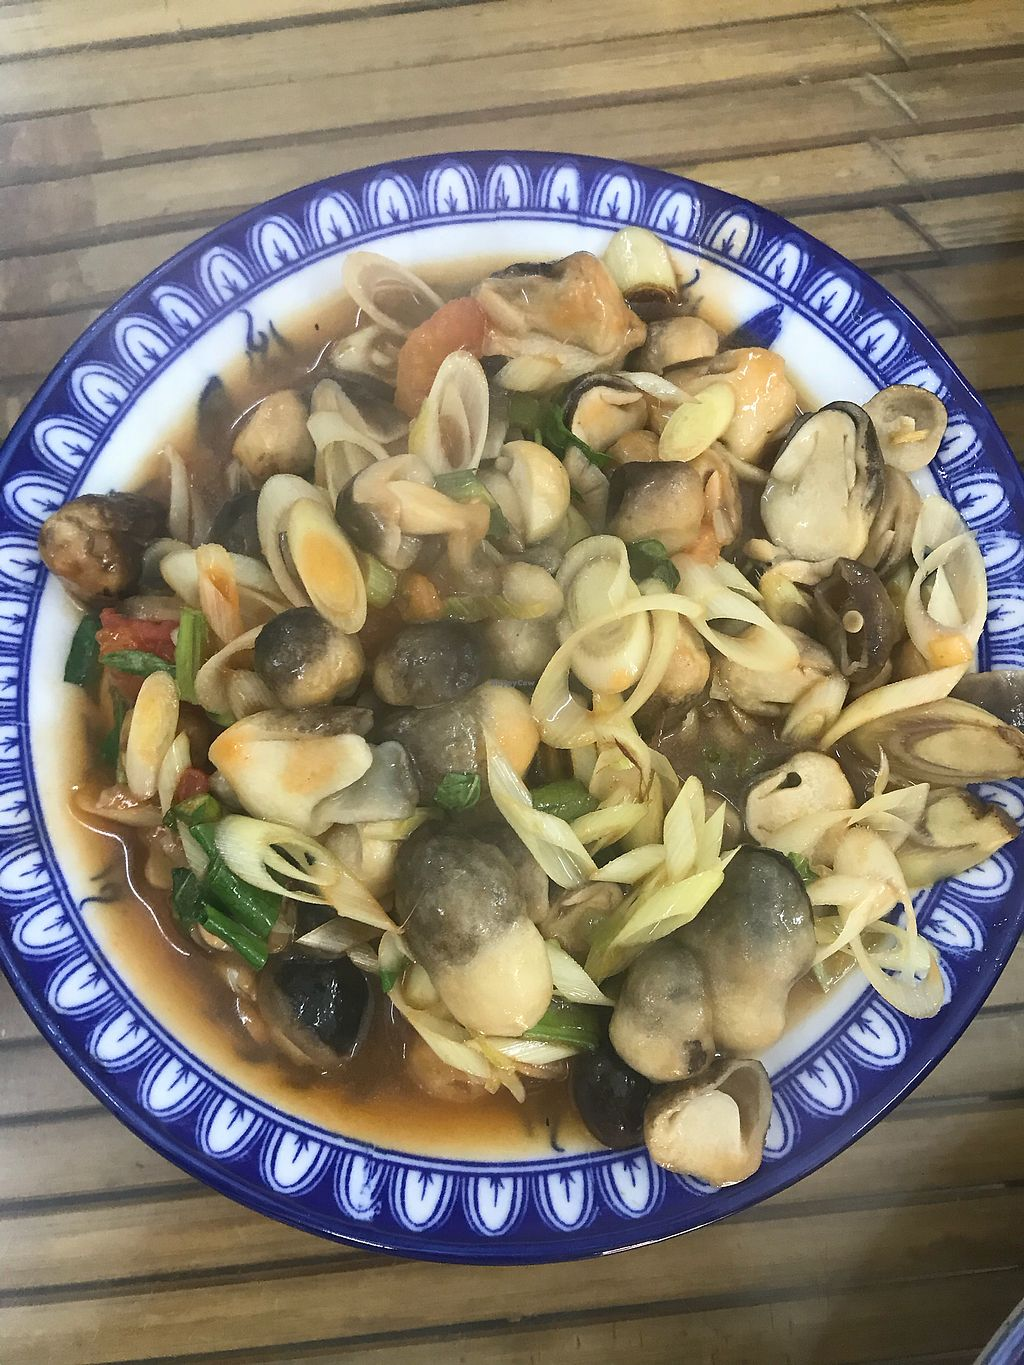 """Photo of Lien Hoa  by <a href=""""/members/profile/T-Bone"""">T-Bone</a> <br/>Mushrooms with lemongrass <br/> January 15, 2018  - <a href='/contact/abuse/image/54382/346869'>Report</a>"""